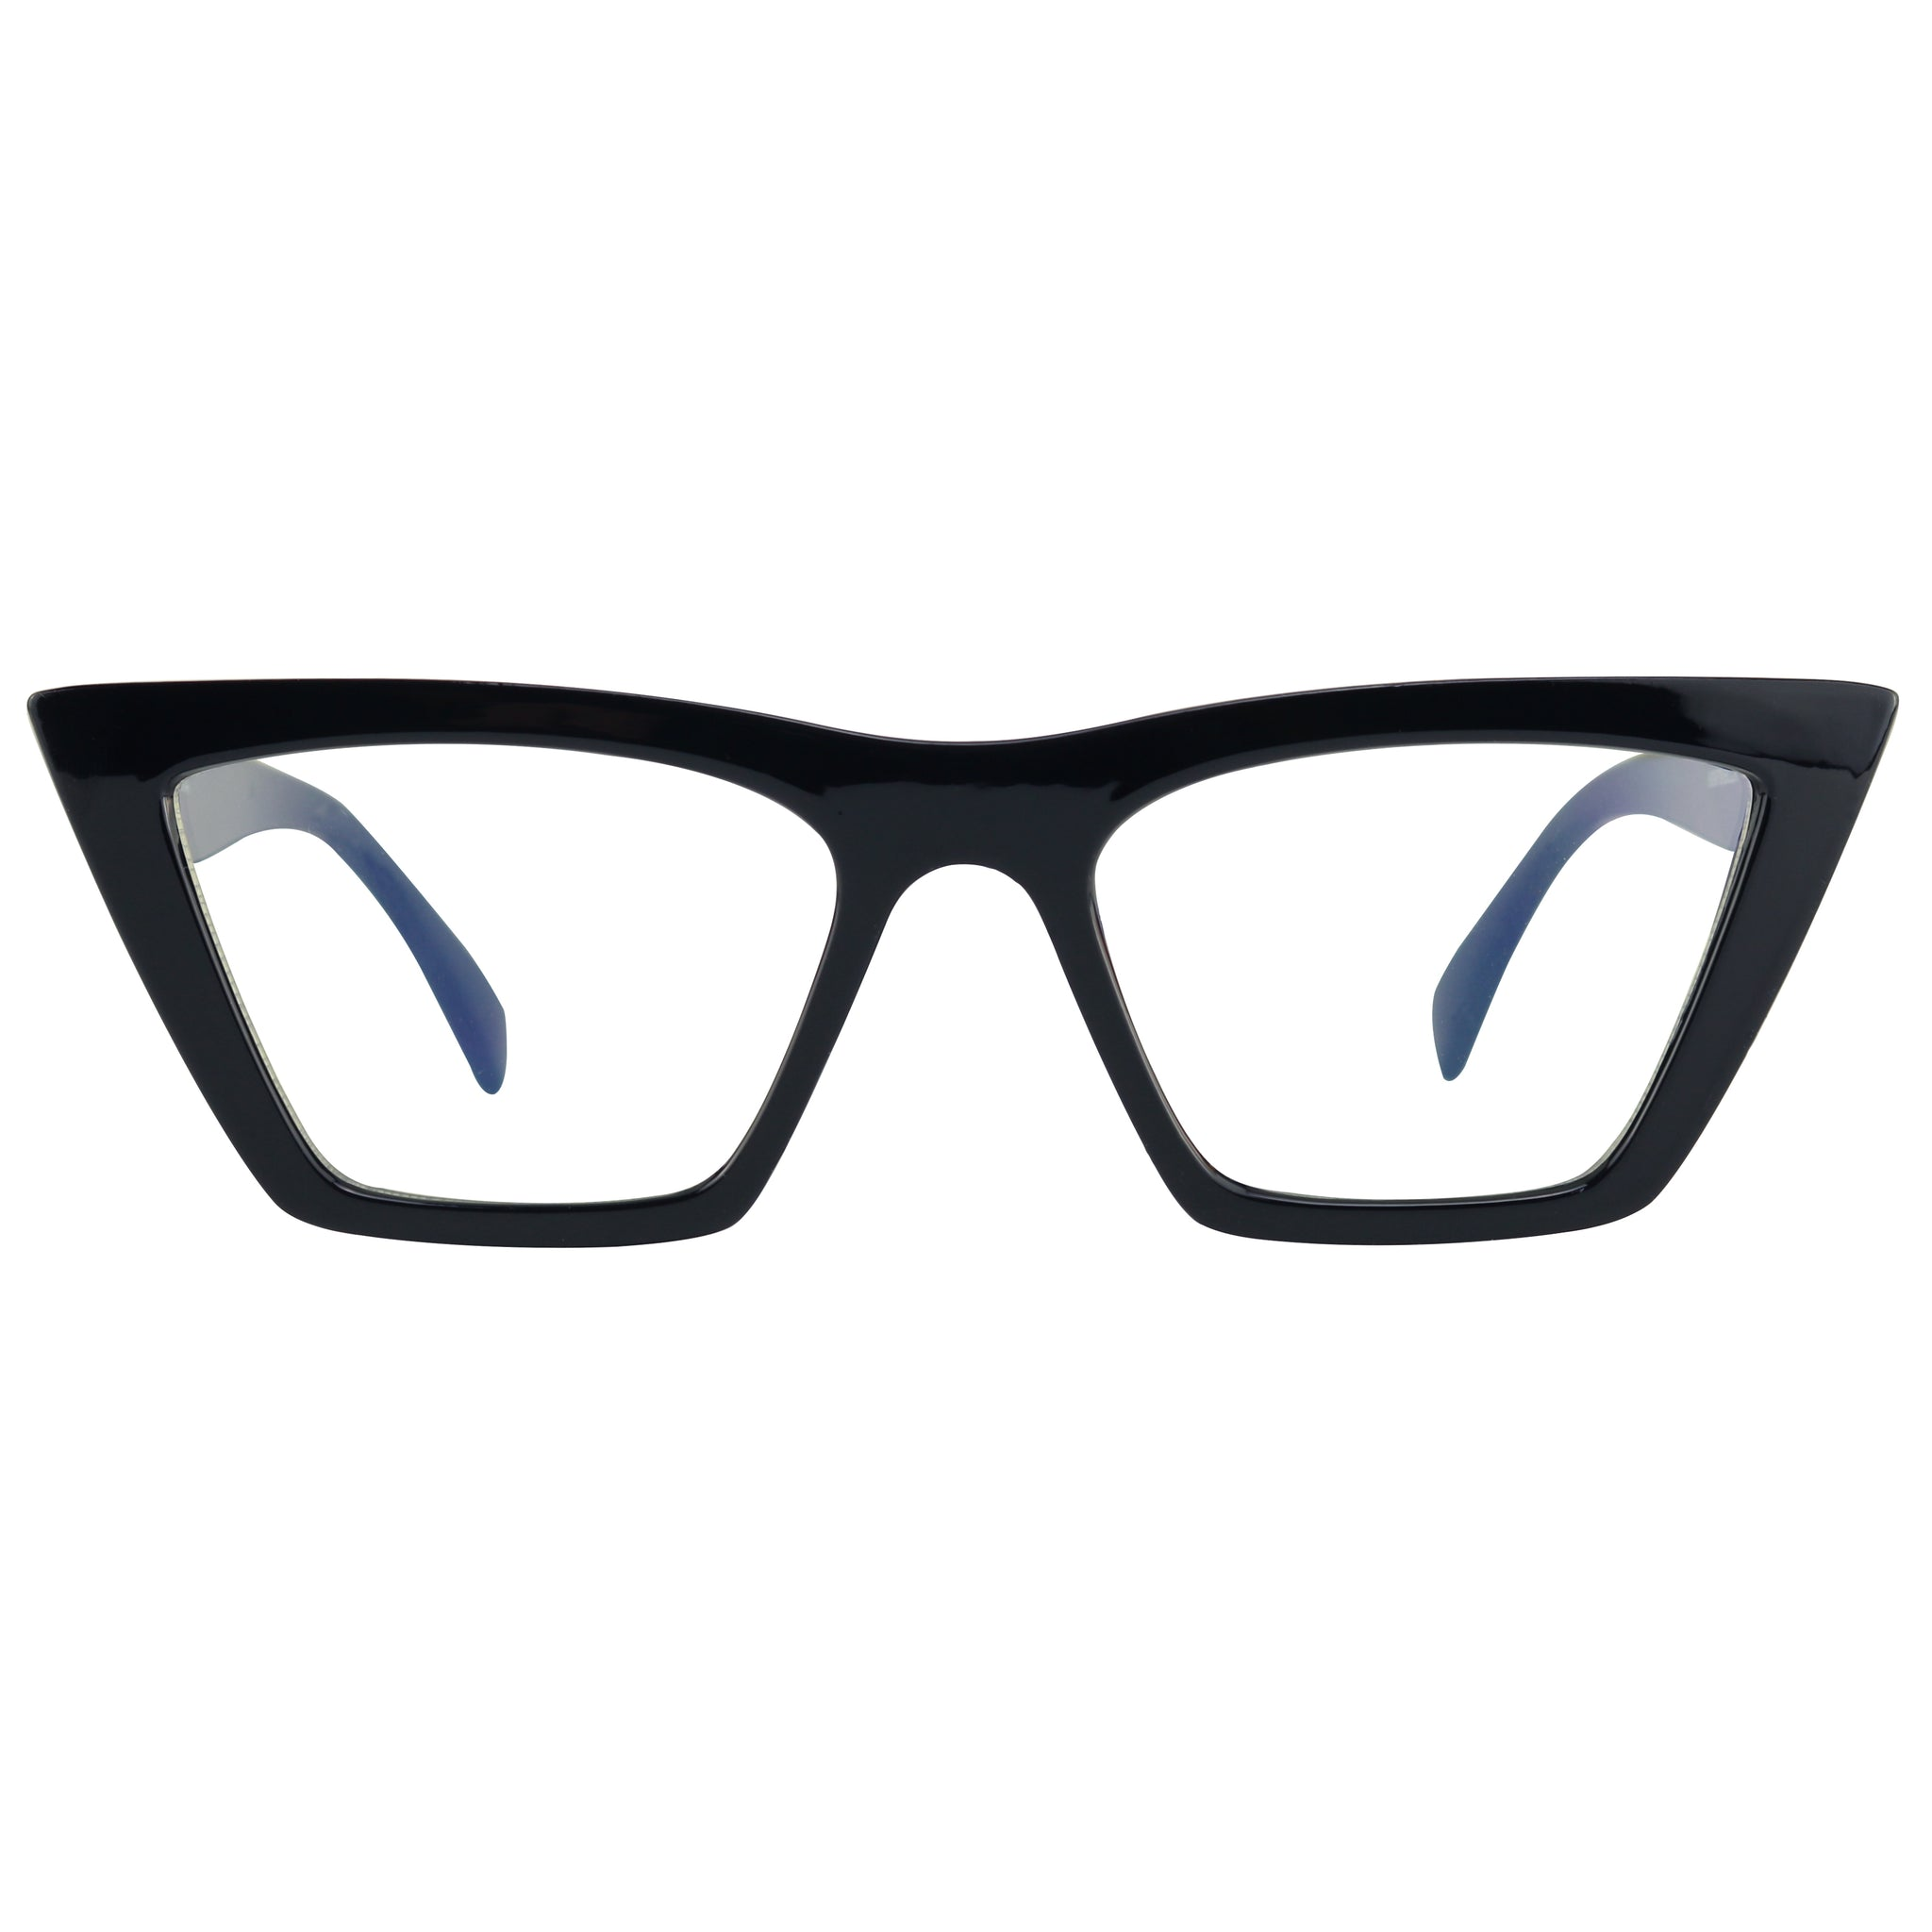 VIVI Blue Light Blocking Cat Eye Glasses Non-Prescription